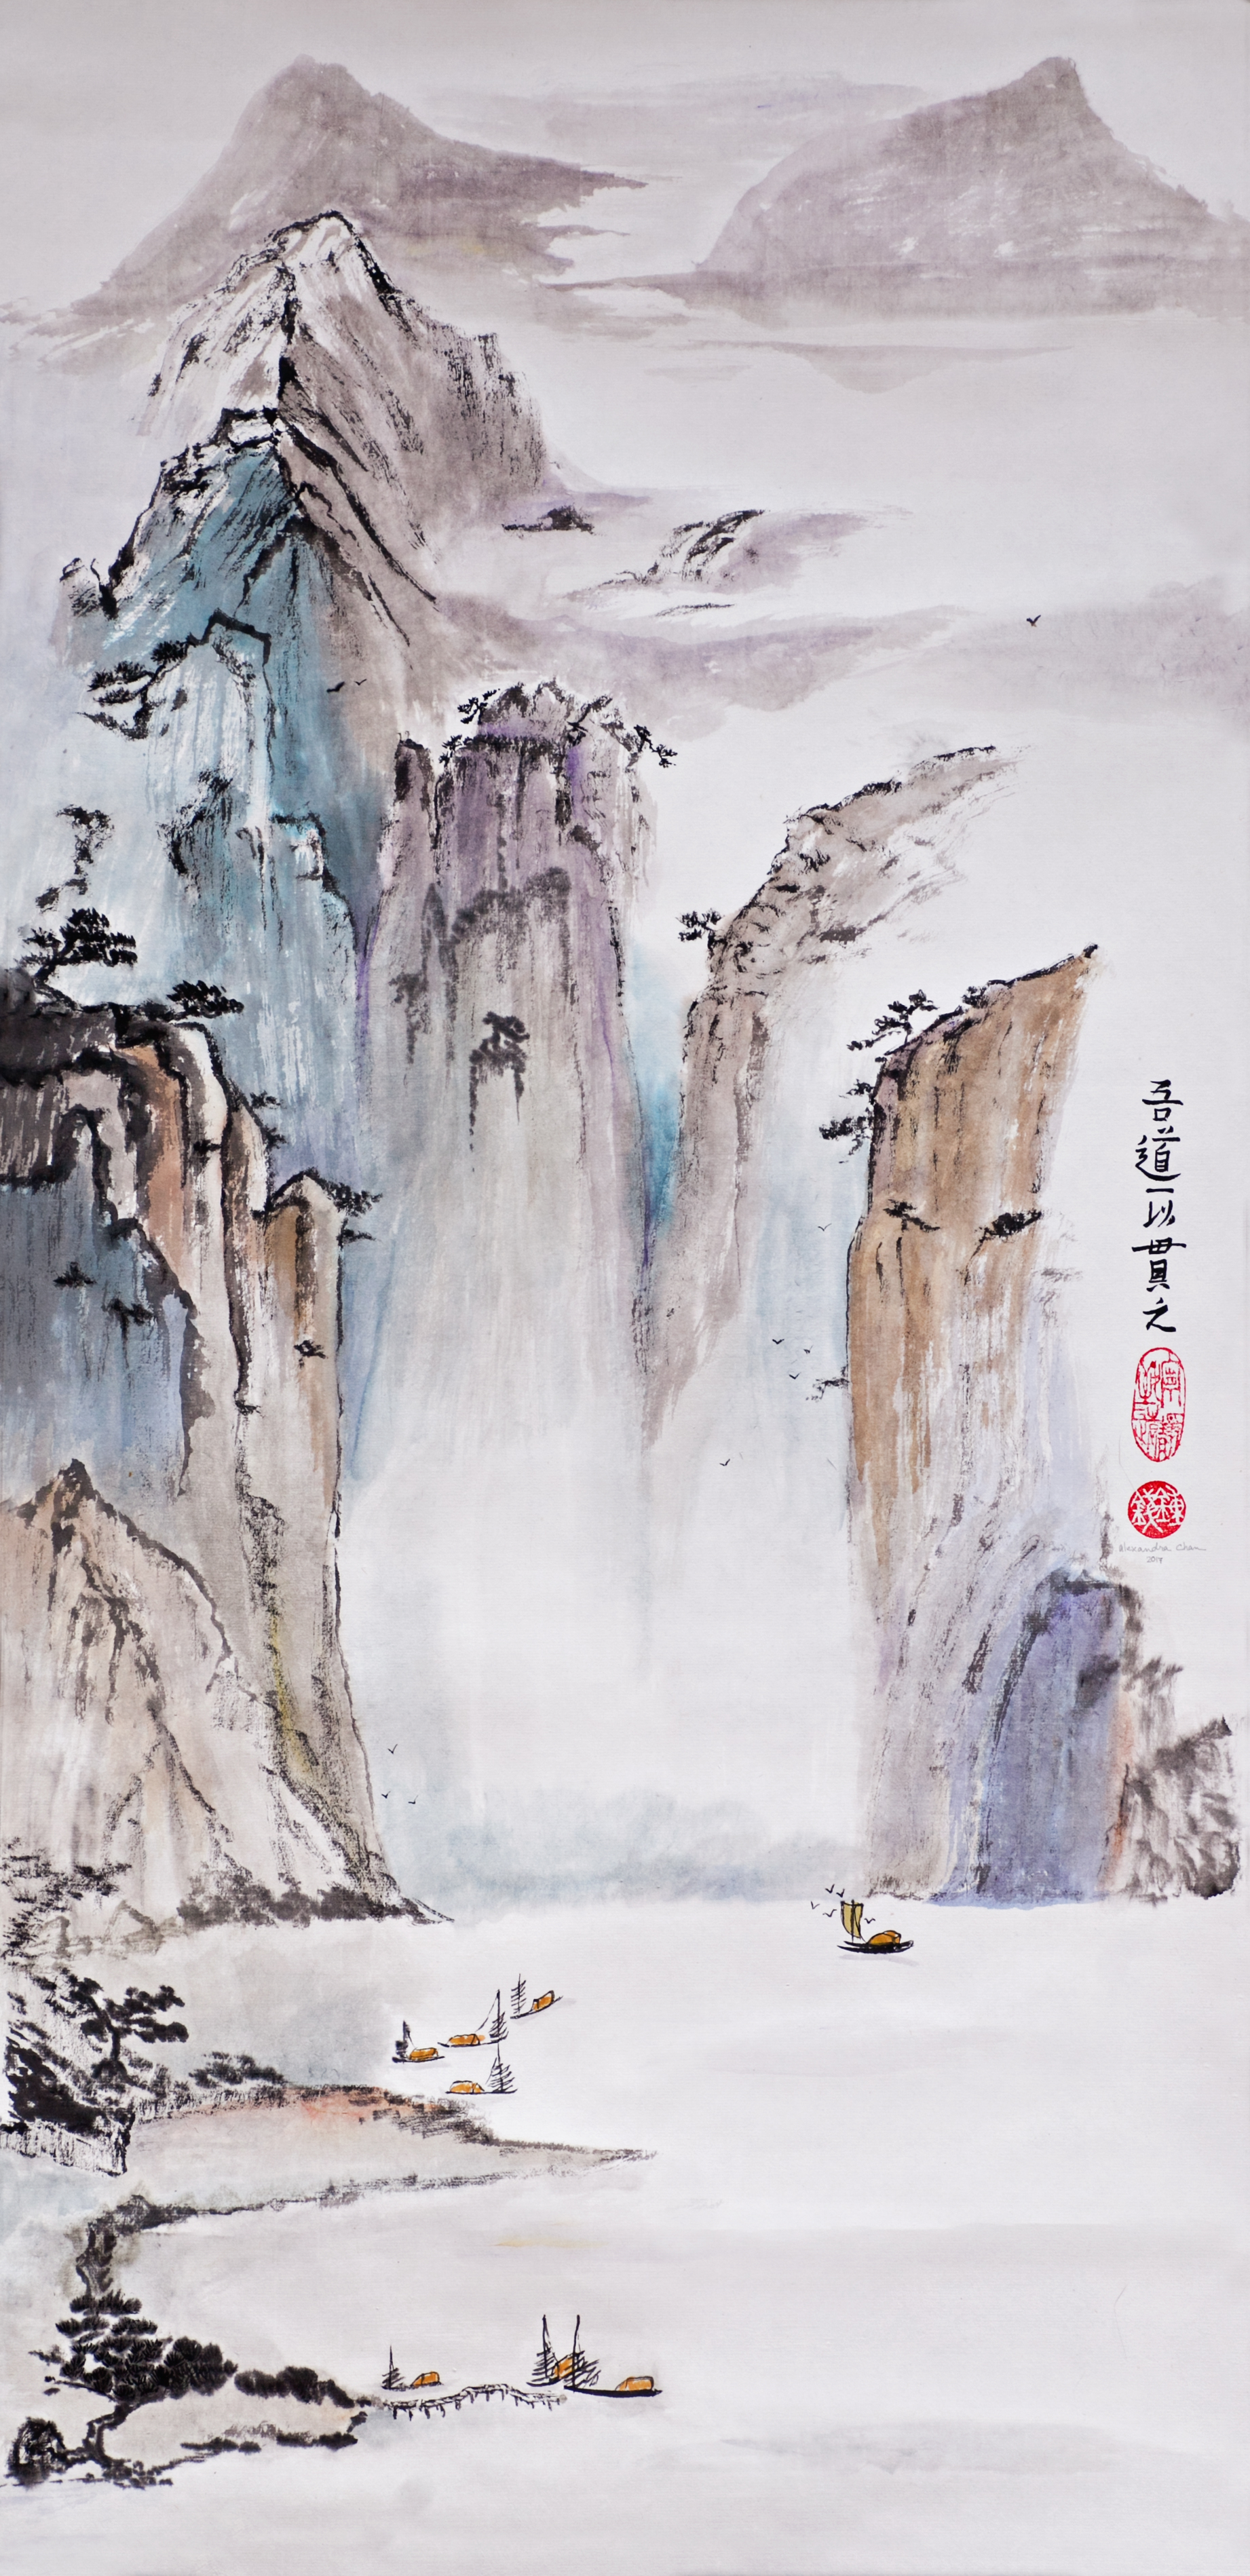 Sampans in a Clouded Gorge - With